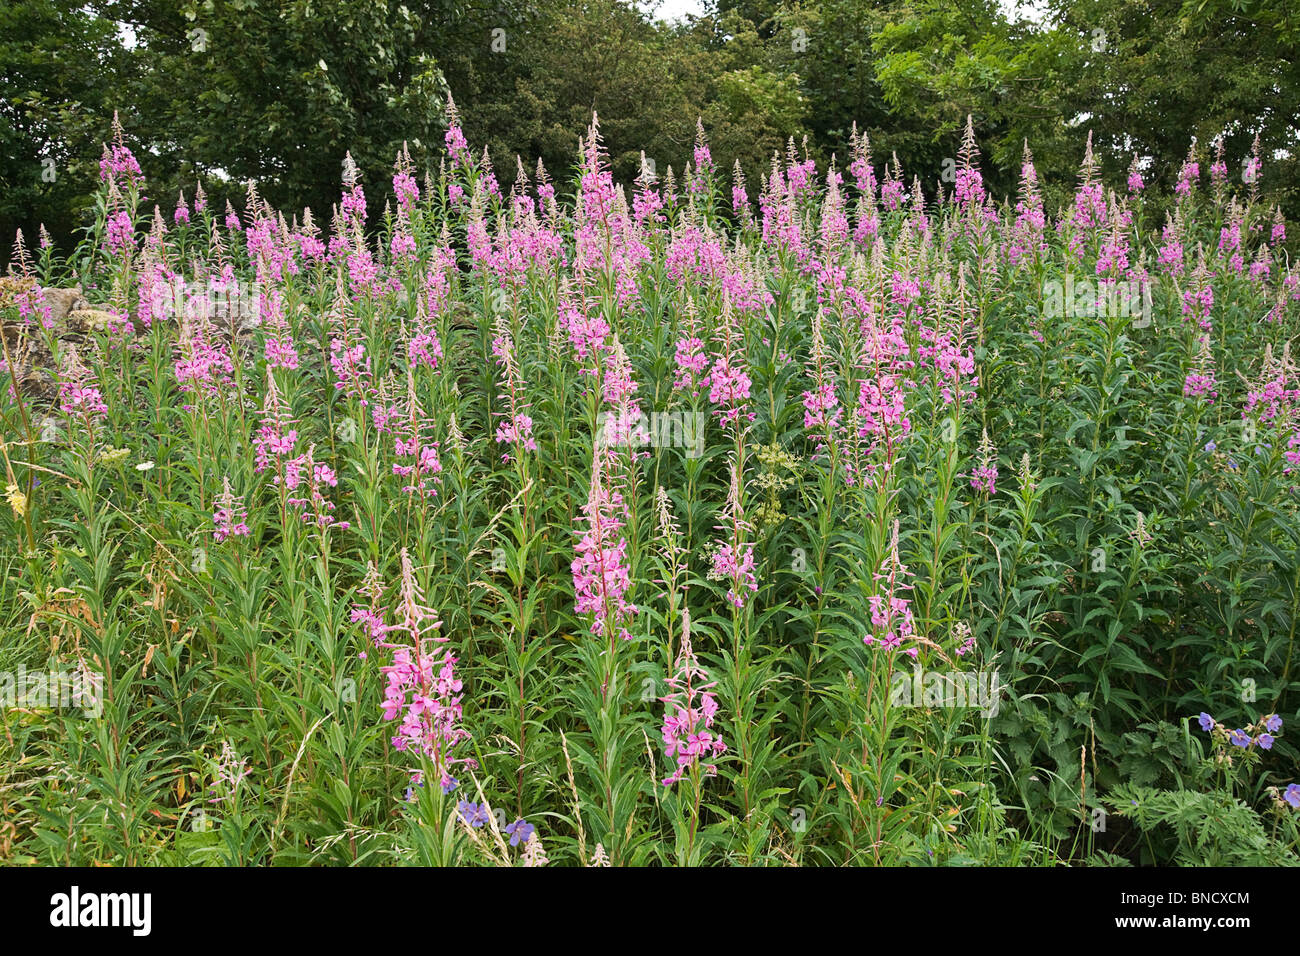 A bank of Rose-bay Willow Herb (Epilobium angustilalium) flowers growing on a grass verge in Melmerby, North Yorkshire - Stock Image